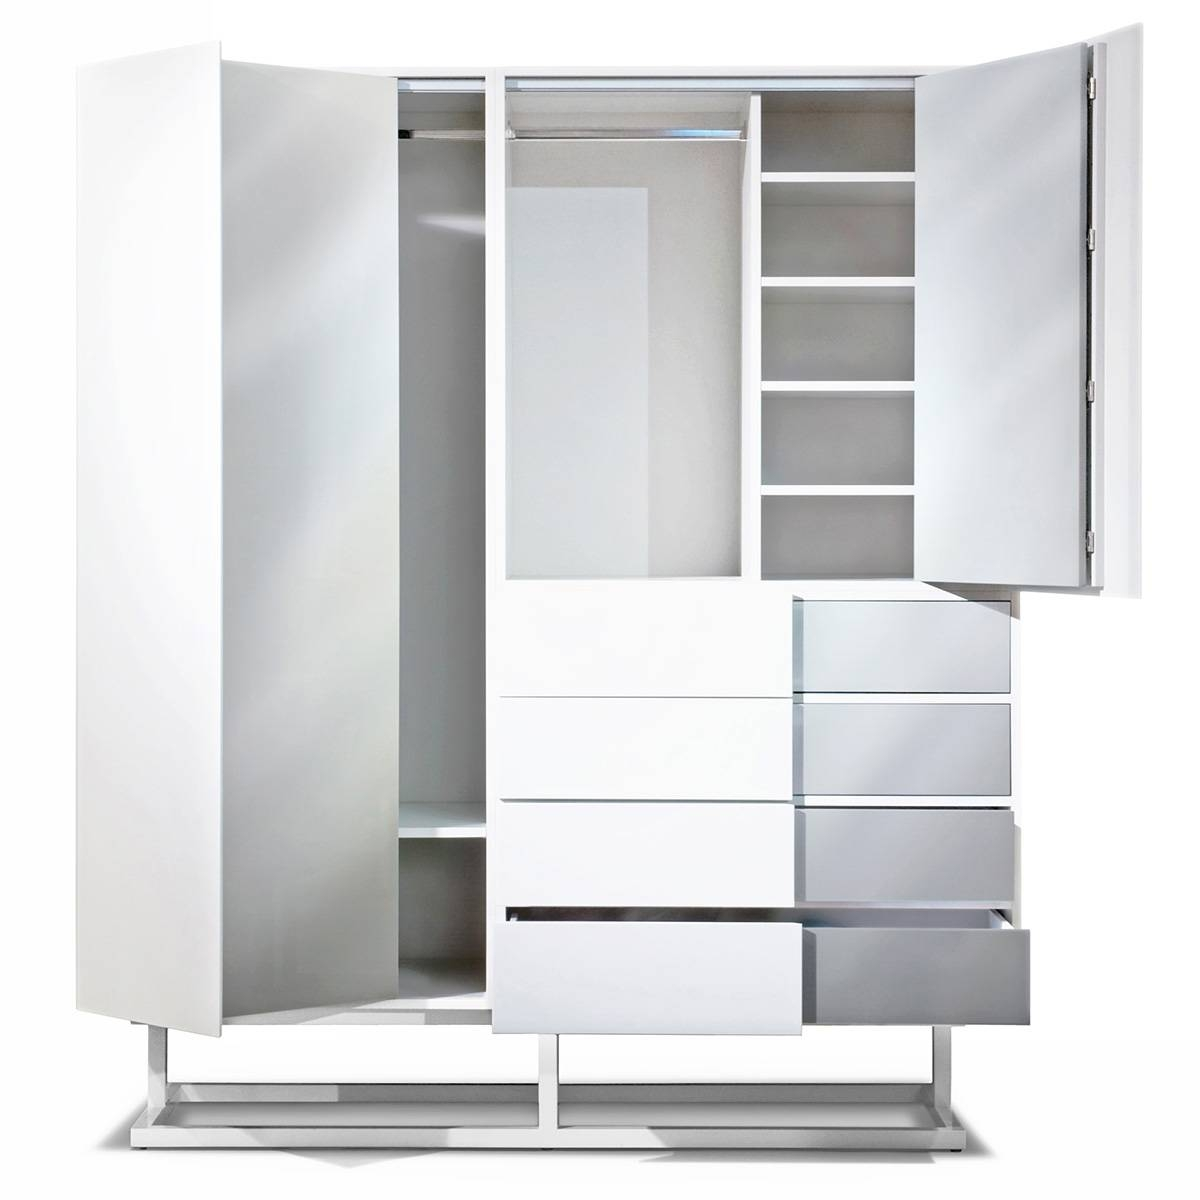 Alfredo Häberli Design Development | Teca for Chest of Drawers Wardrobes Combination (Image 4 of 15)